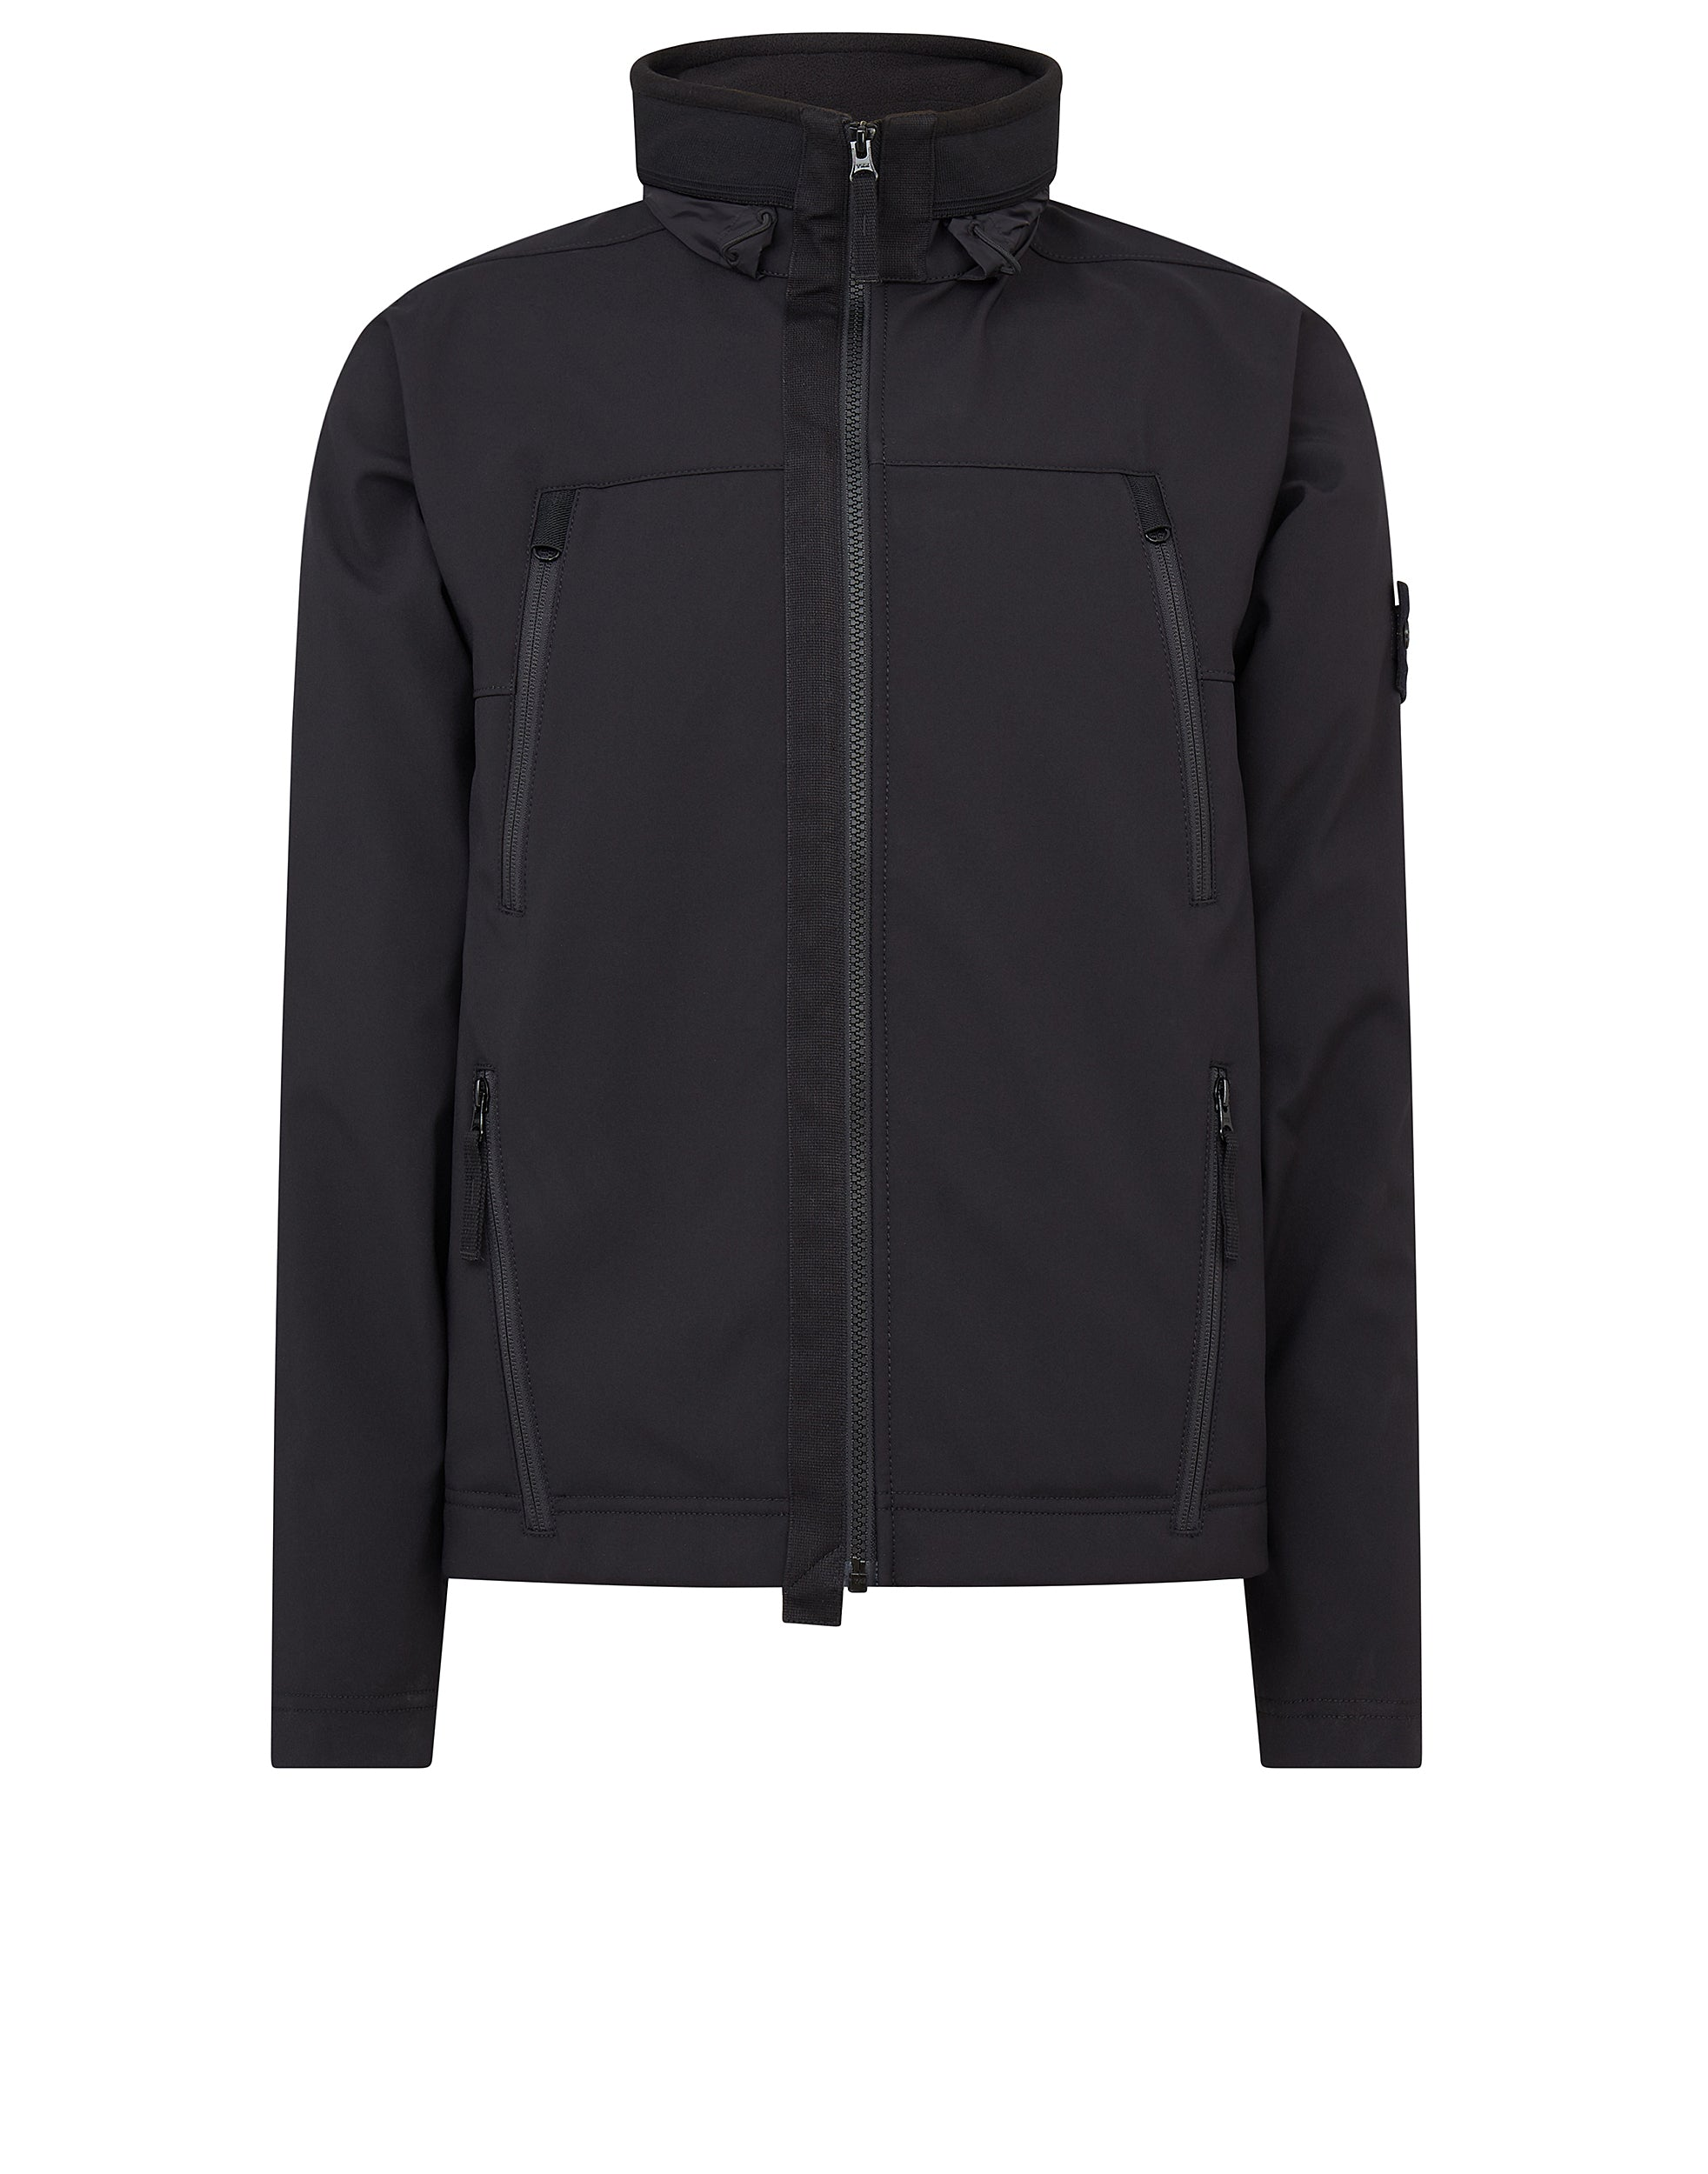 Q0722 SOFT SHELL-R Jacket in Black